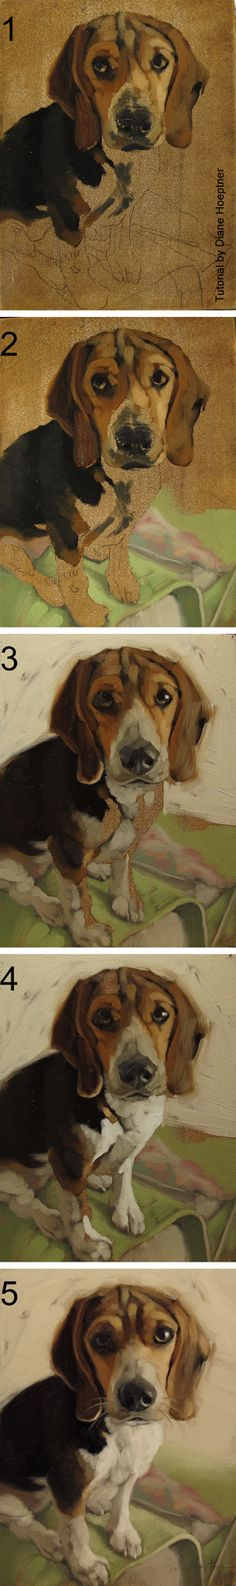 Paint a dog!  A step by step illustrated painting tutorial by Diane Hoeptner.